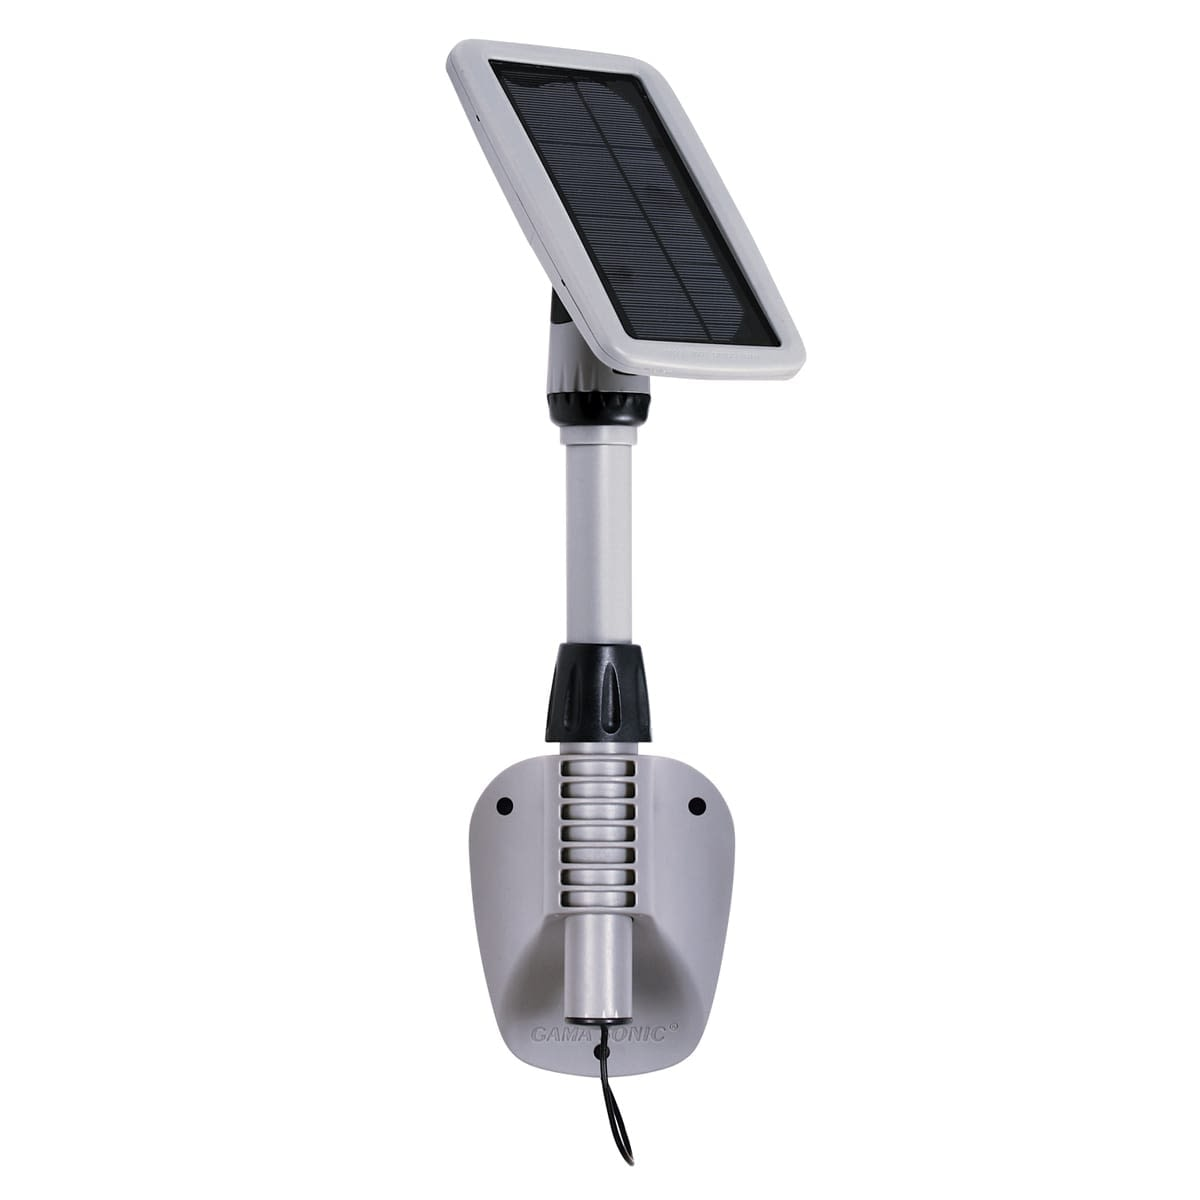 Solar Powered Shed Light-Light My Shed III-GS-16LD By Gama Sonic_2